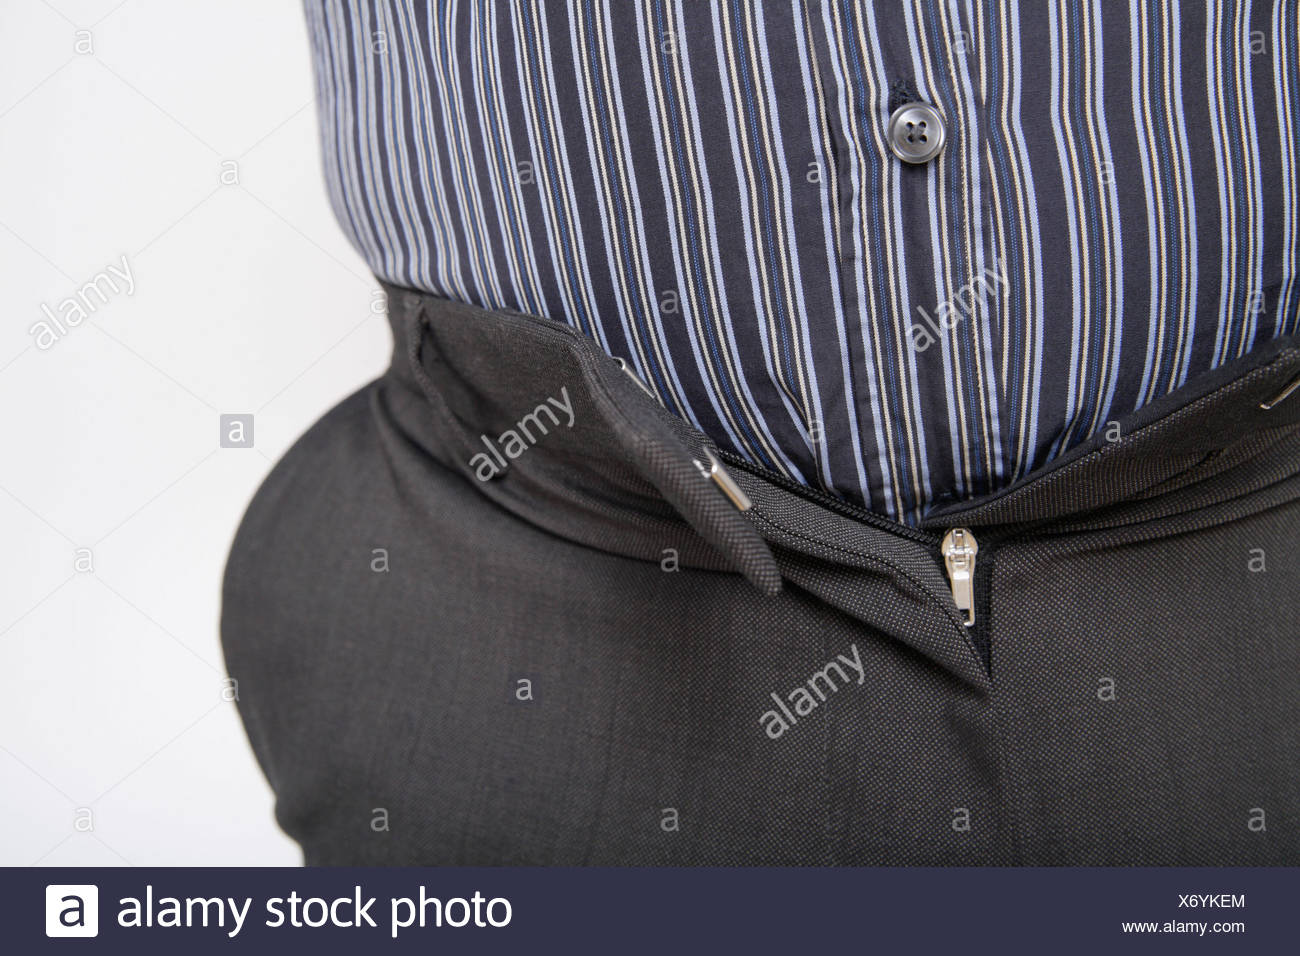 Close up of mature man with tight trousers against white background - Stock Image